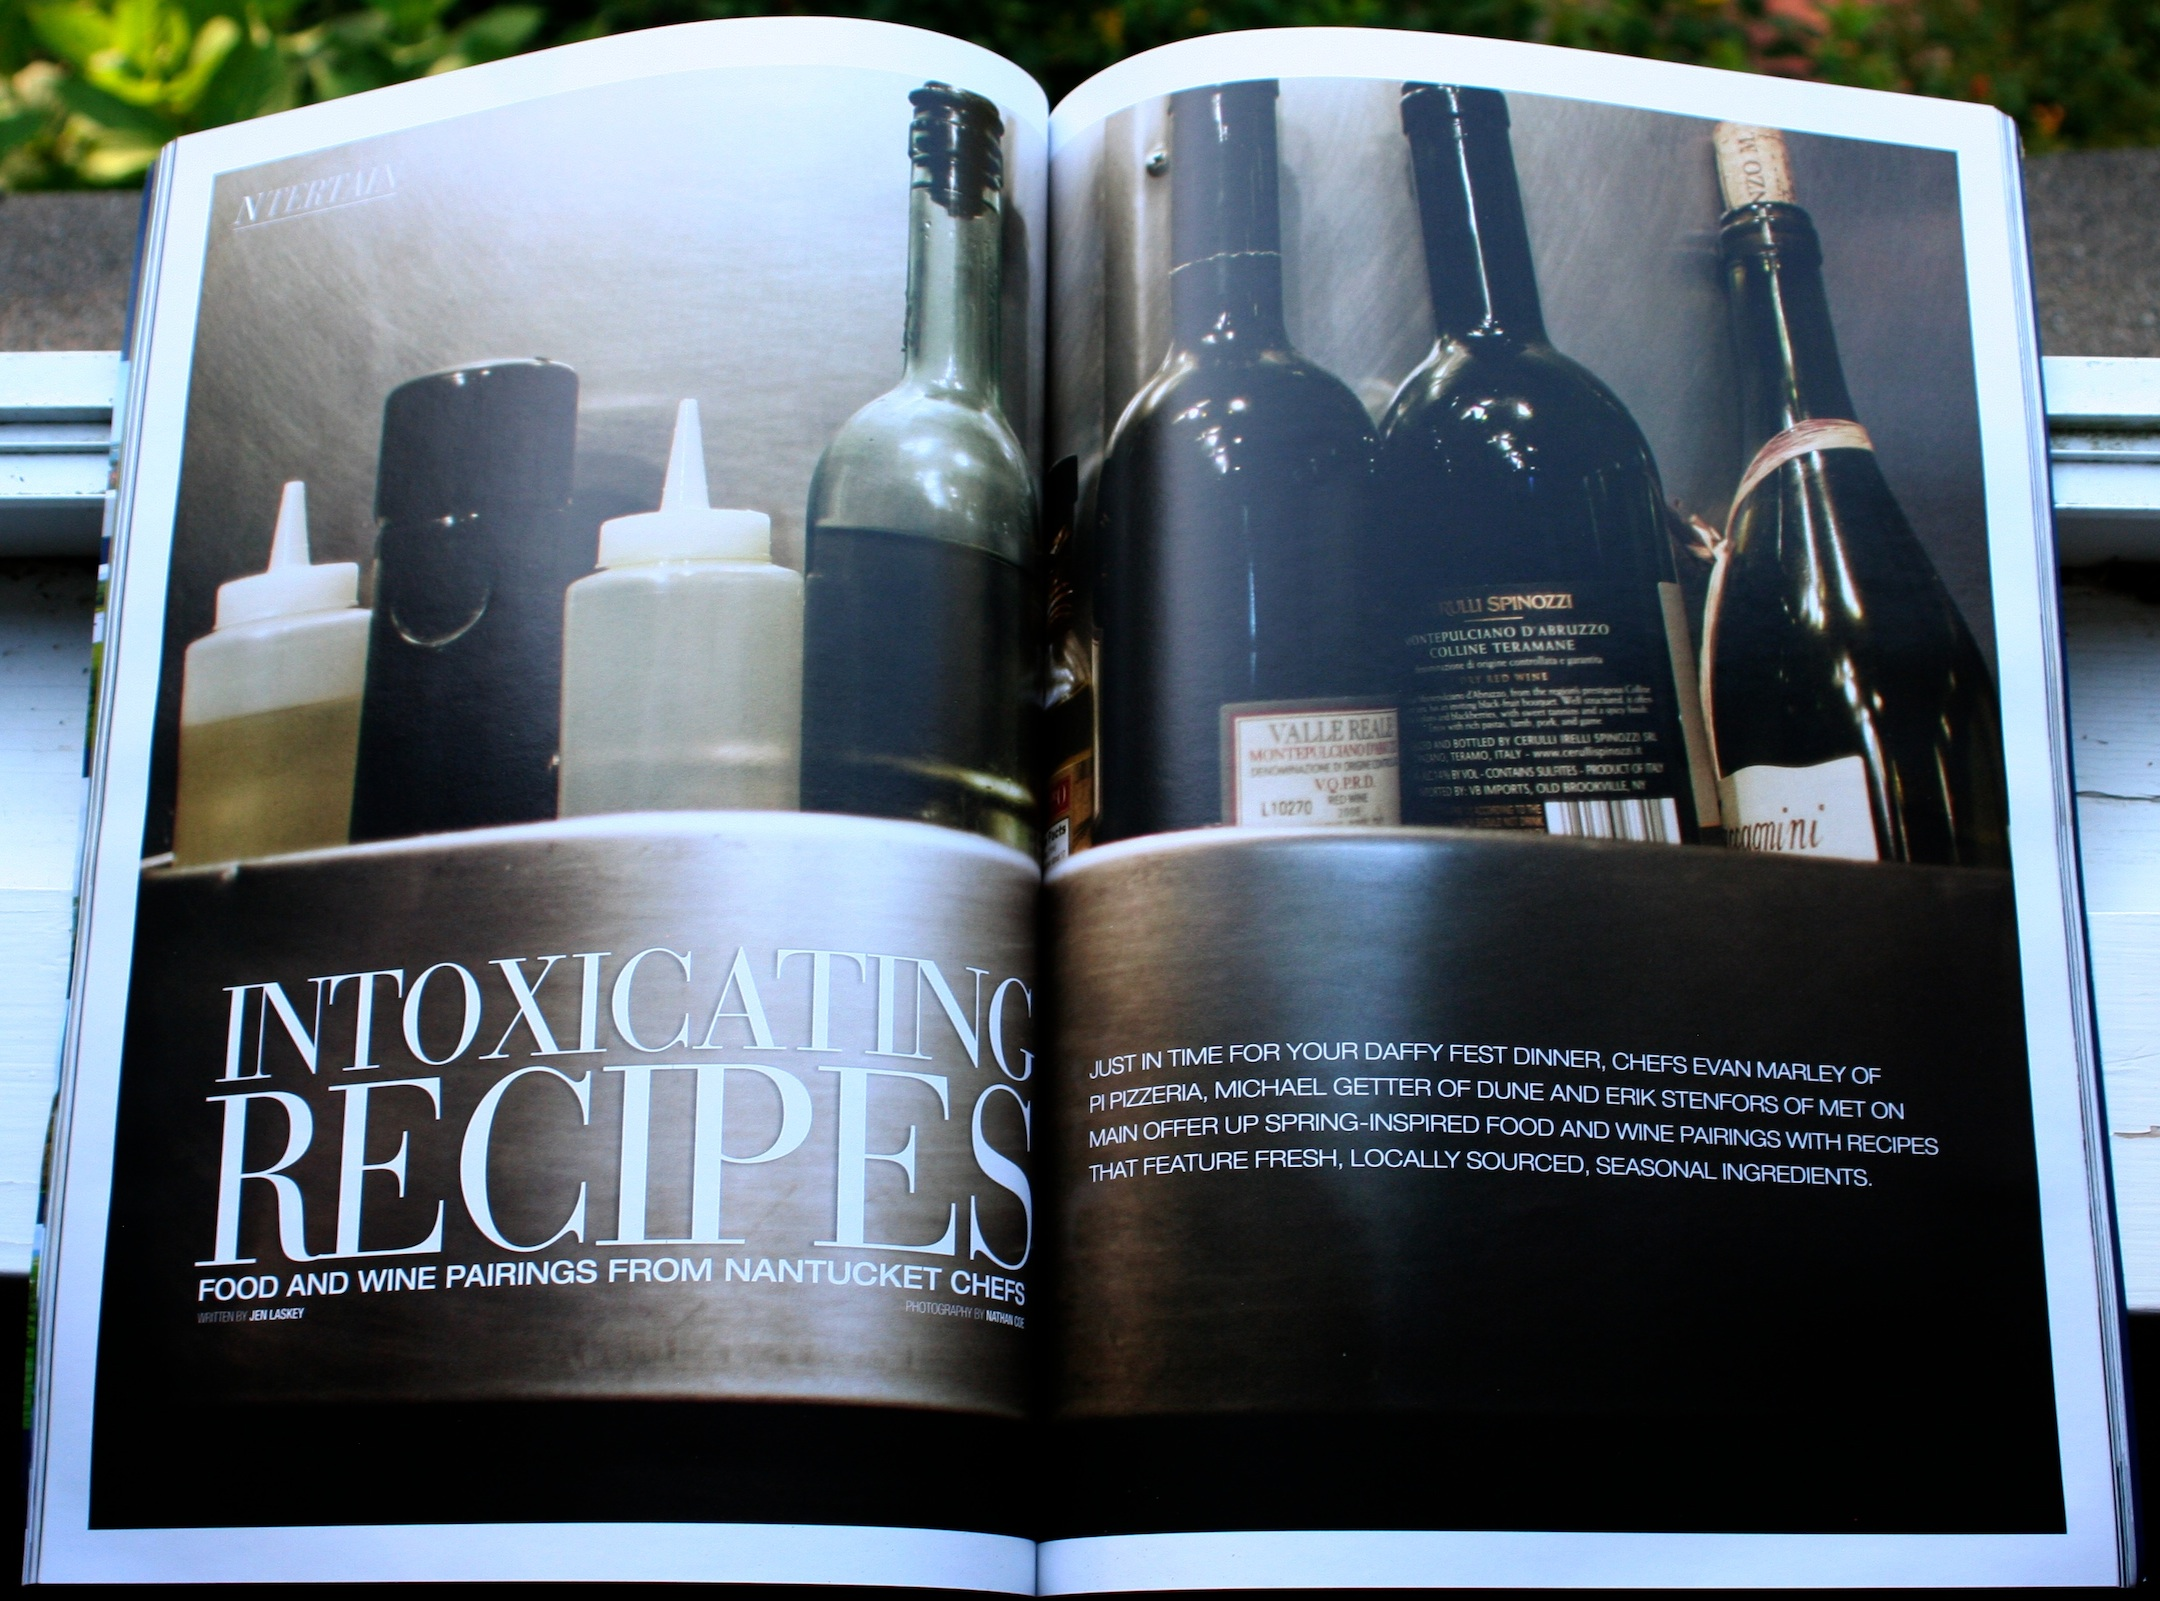 Intoxicating Recipes - Photo by Nathan Coe for Nantucket magazine